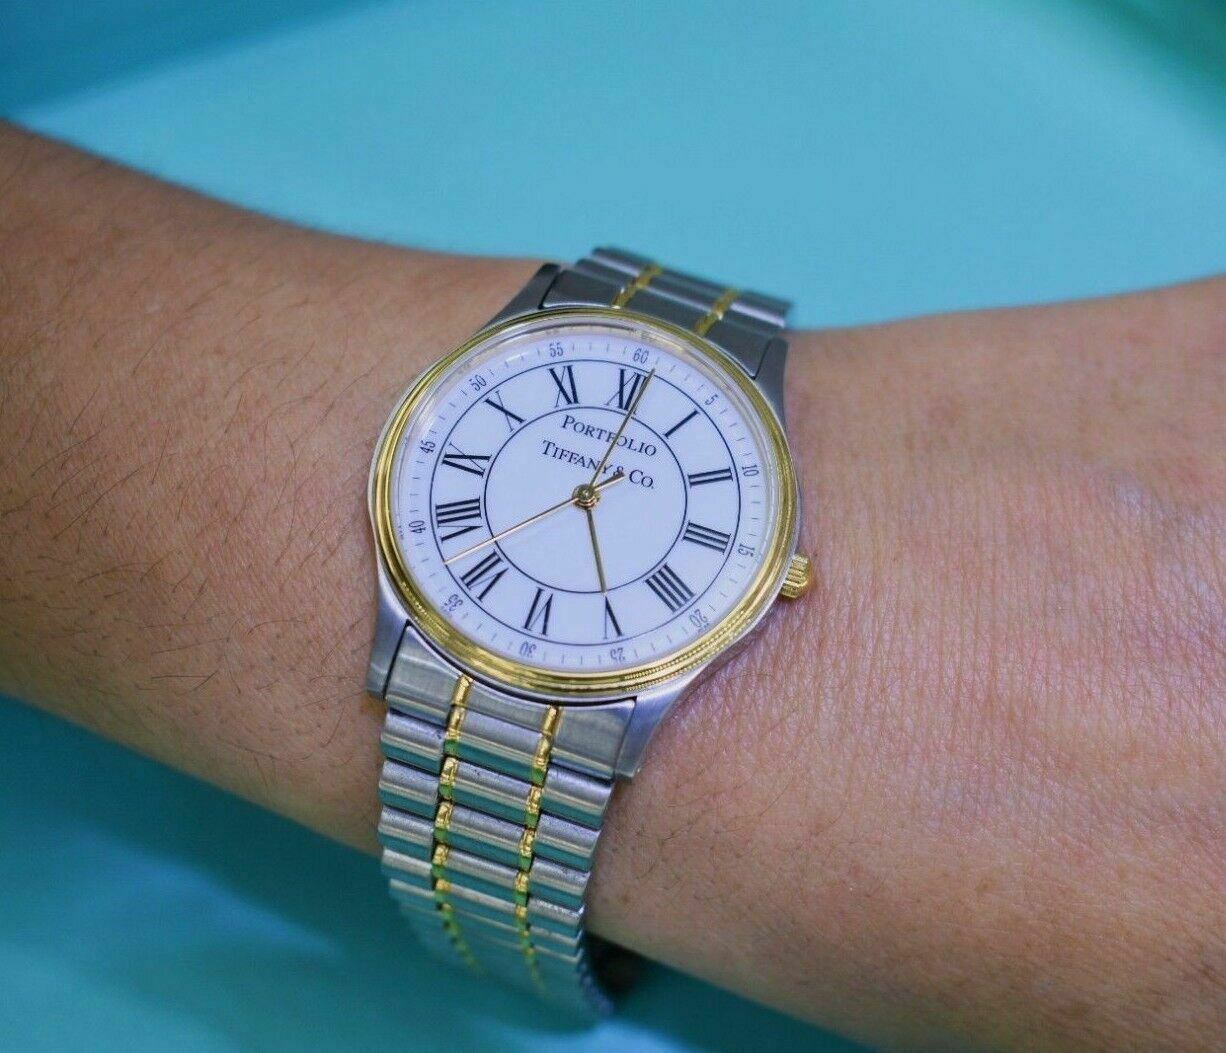 Tiffany & Co. 18K Yellow Gold and Stainless Steel Portfolio Watch